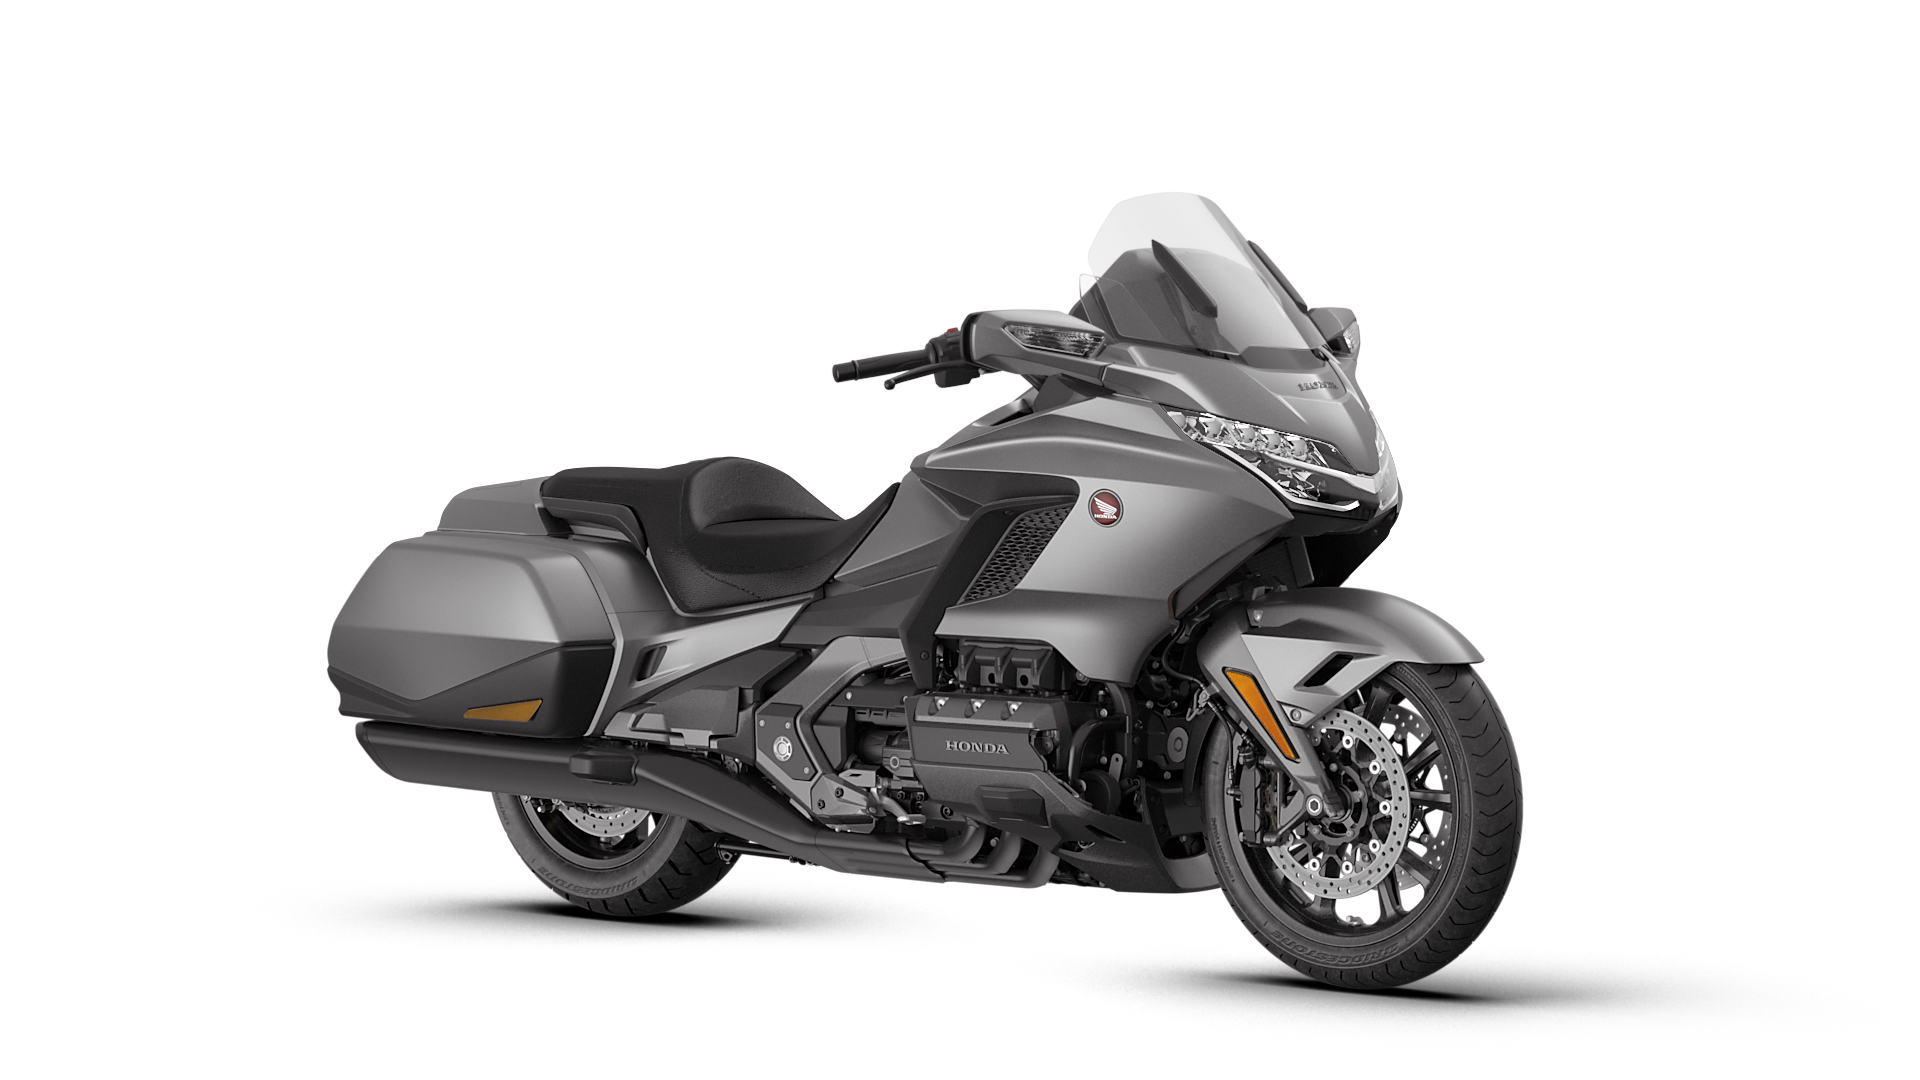 42 New 2019 Honda Gold Wing Photos